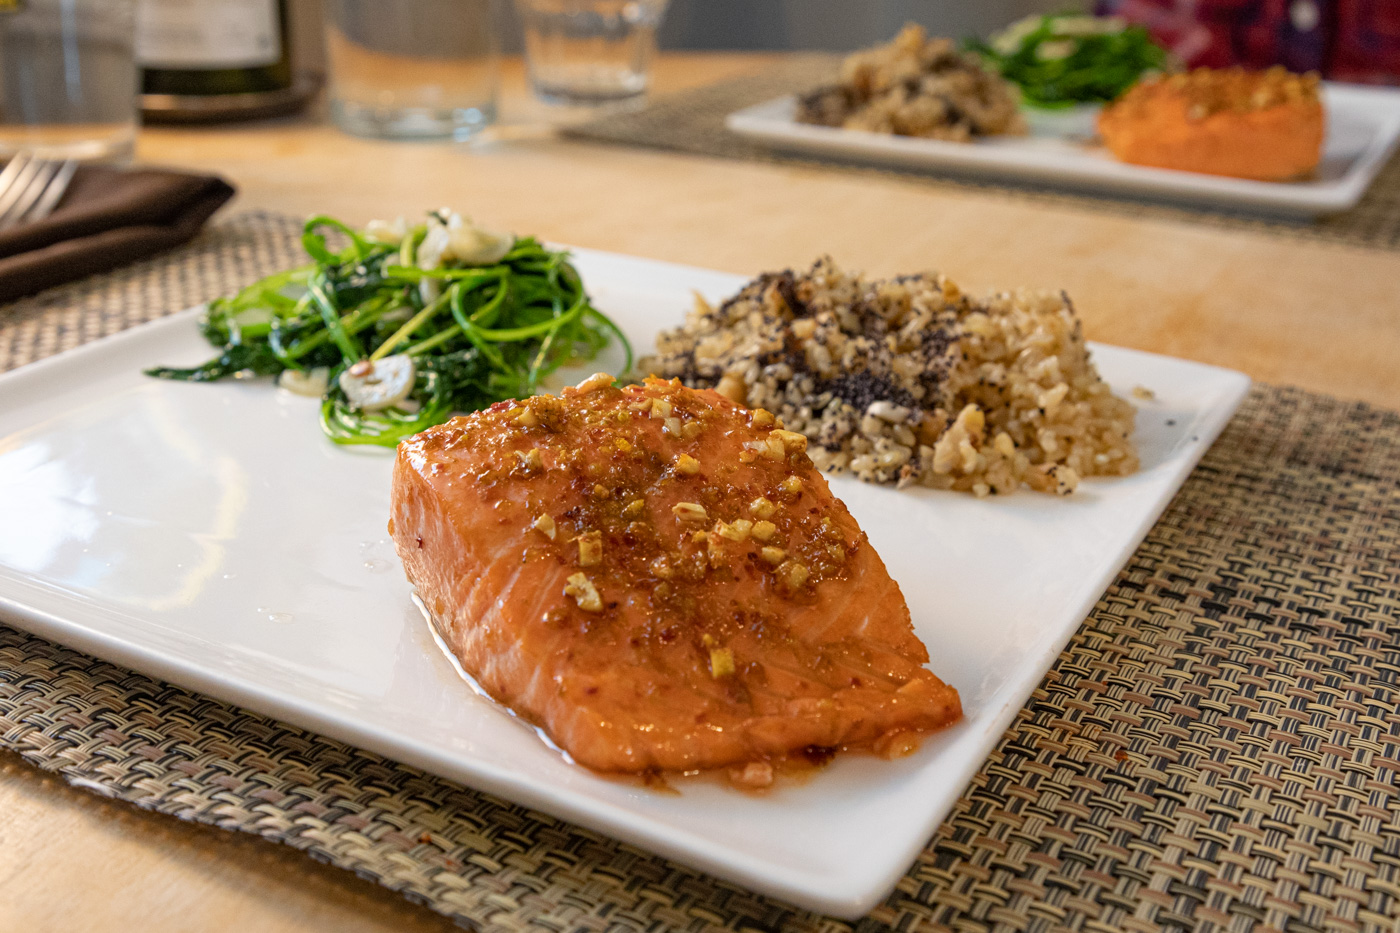 Pomegranate-Glazed Salmon, Pilaf Coquelicot, Baby Broccoli Leaves